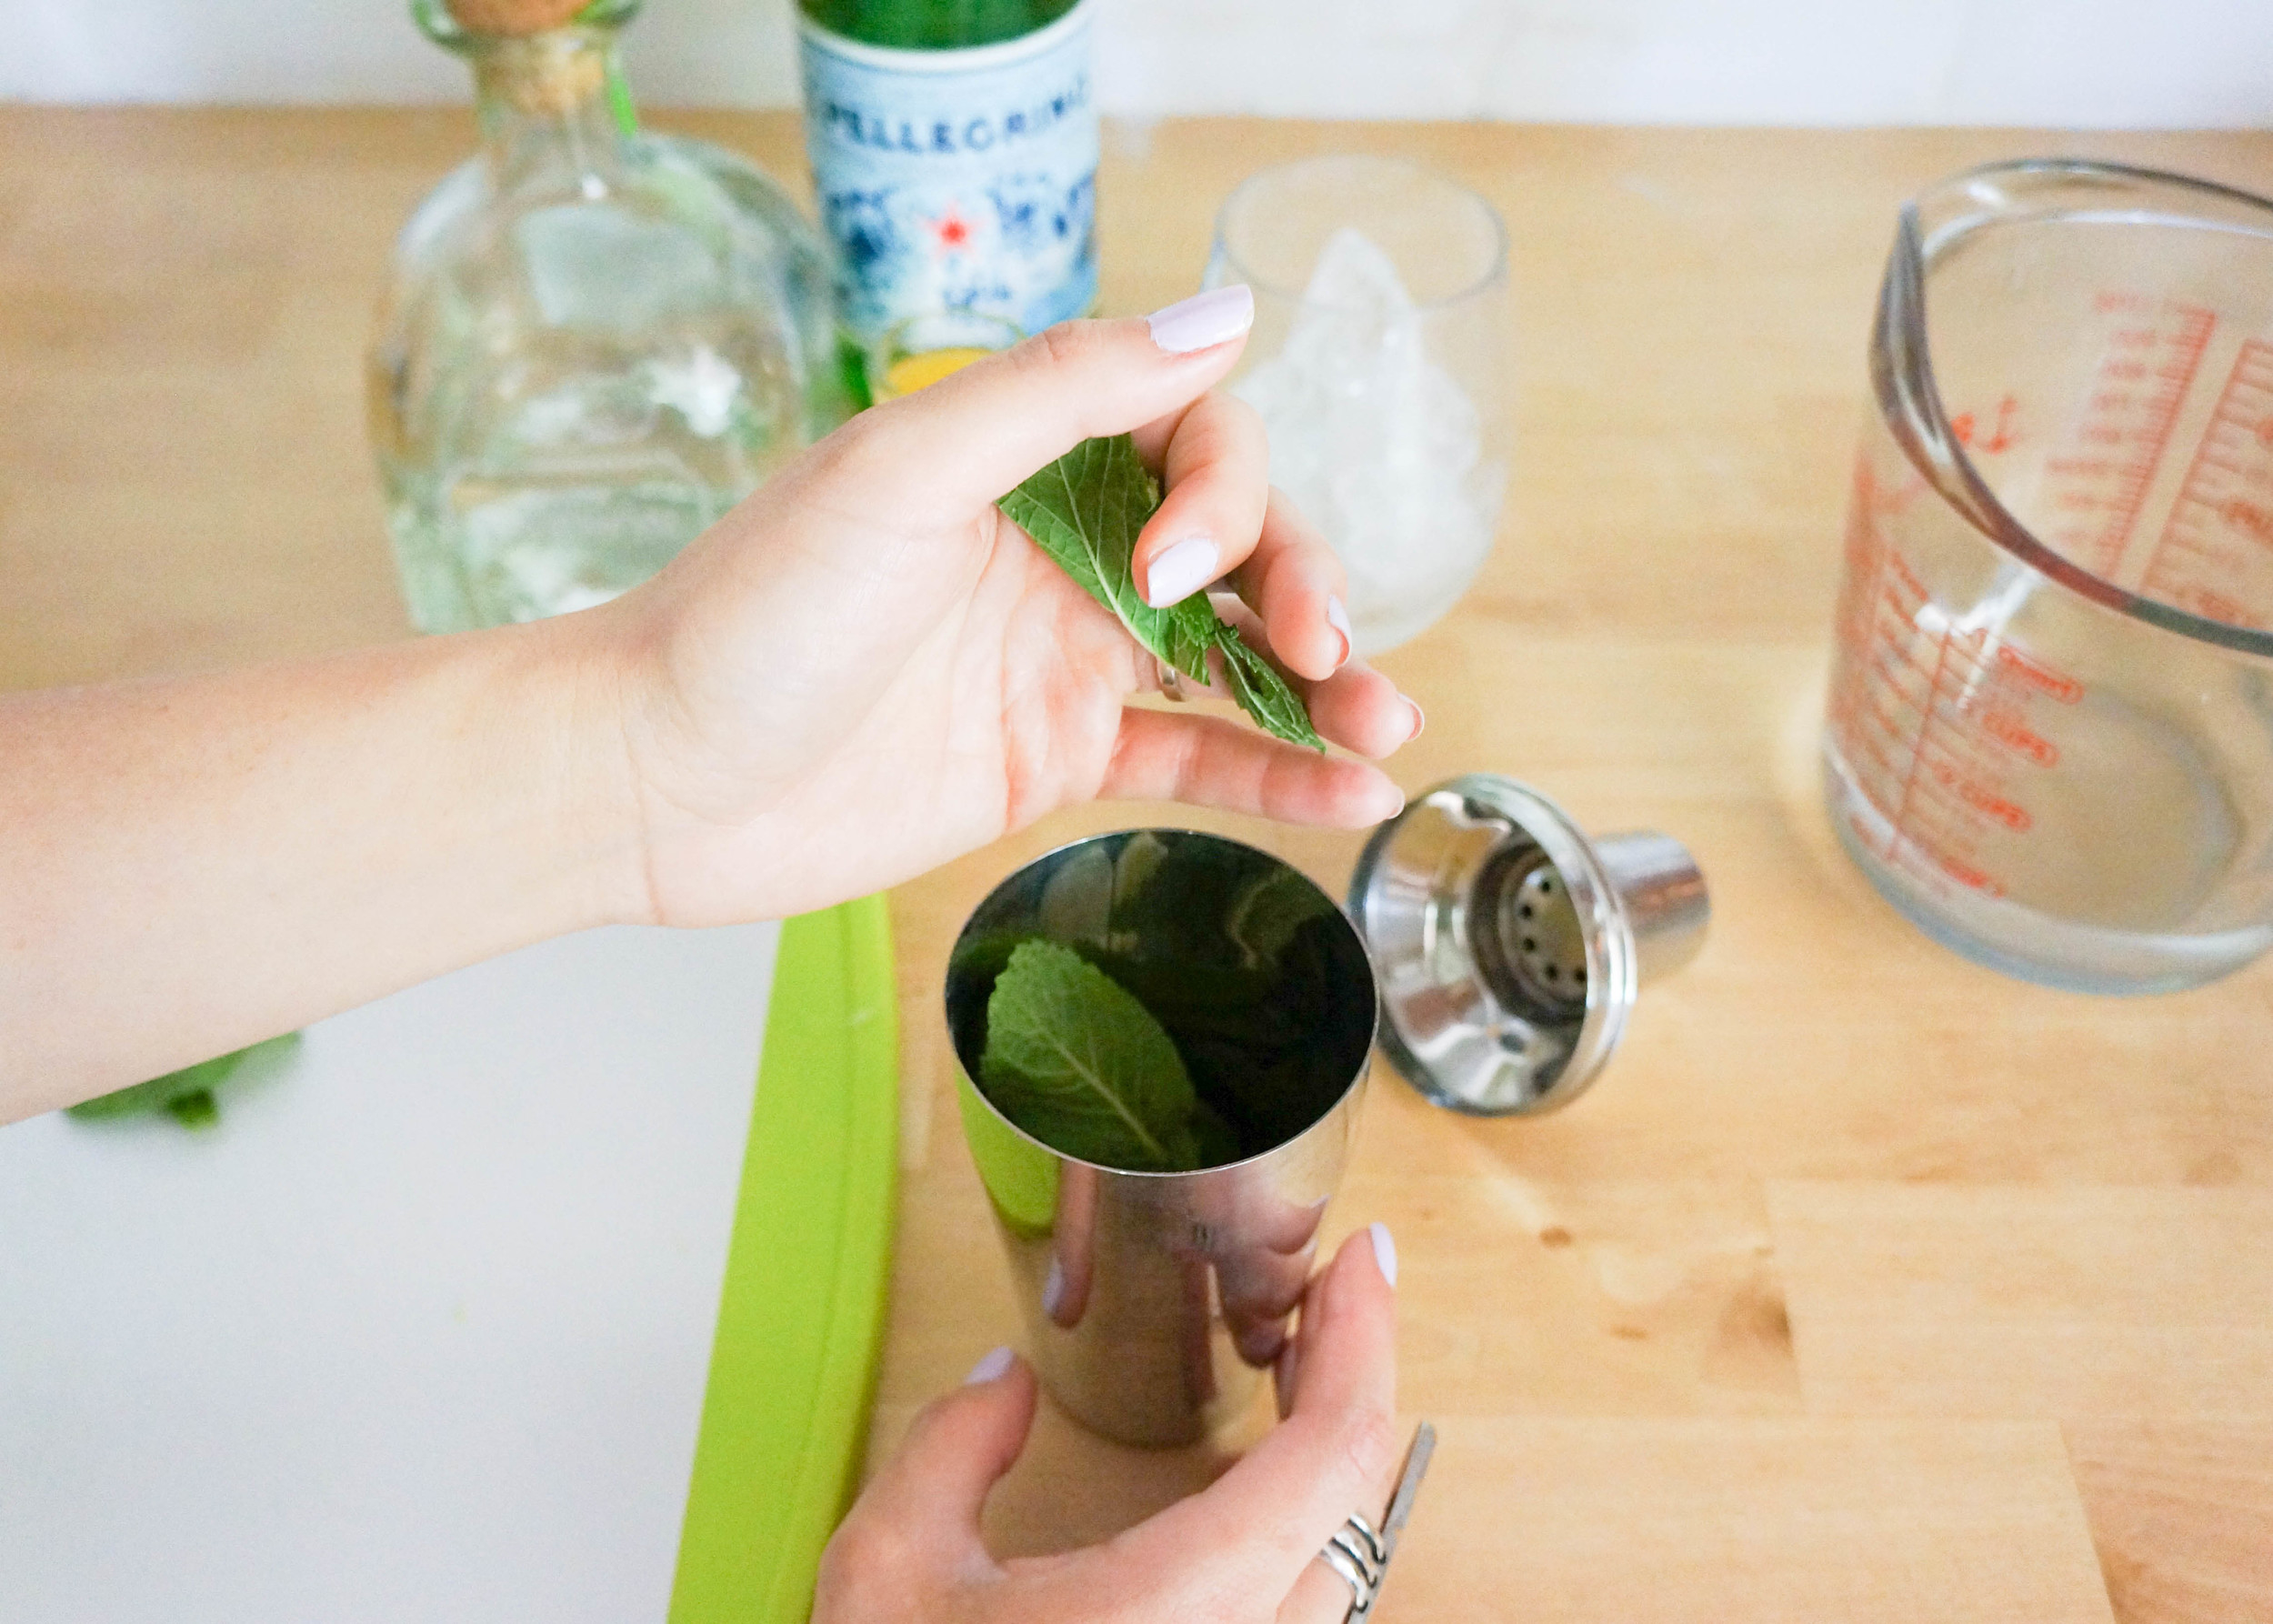 Combine Simple Sugar, jalapeno, mint and lime wedges in a cocktail shaker and muddle.